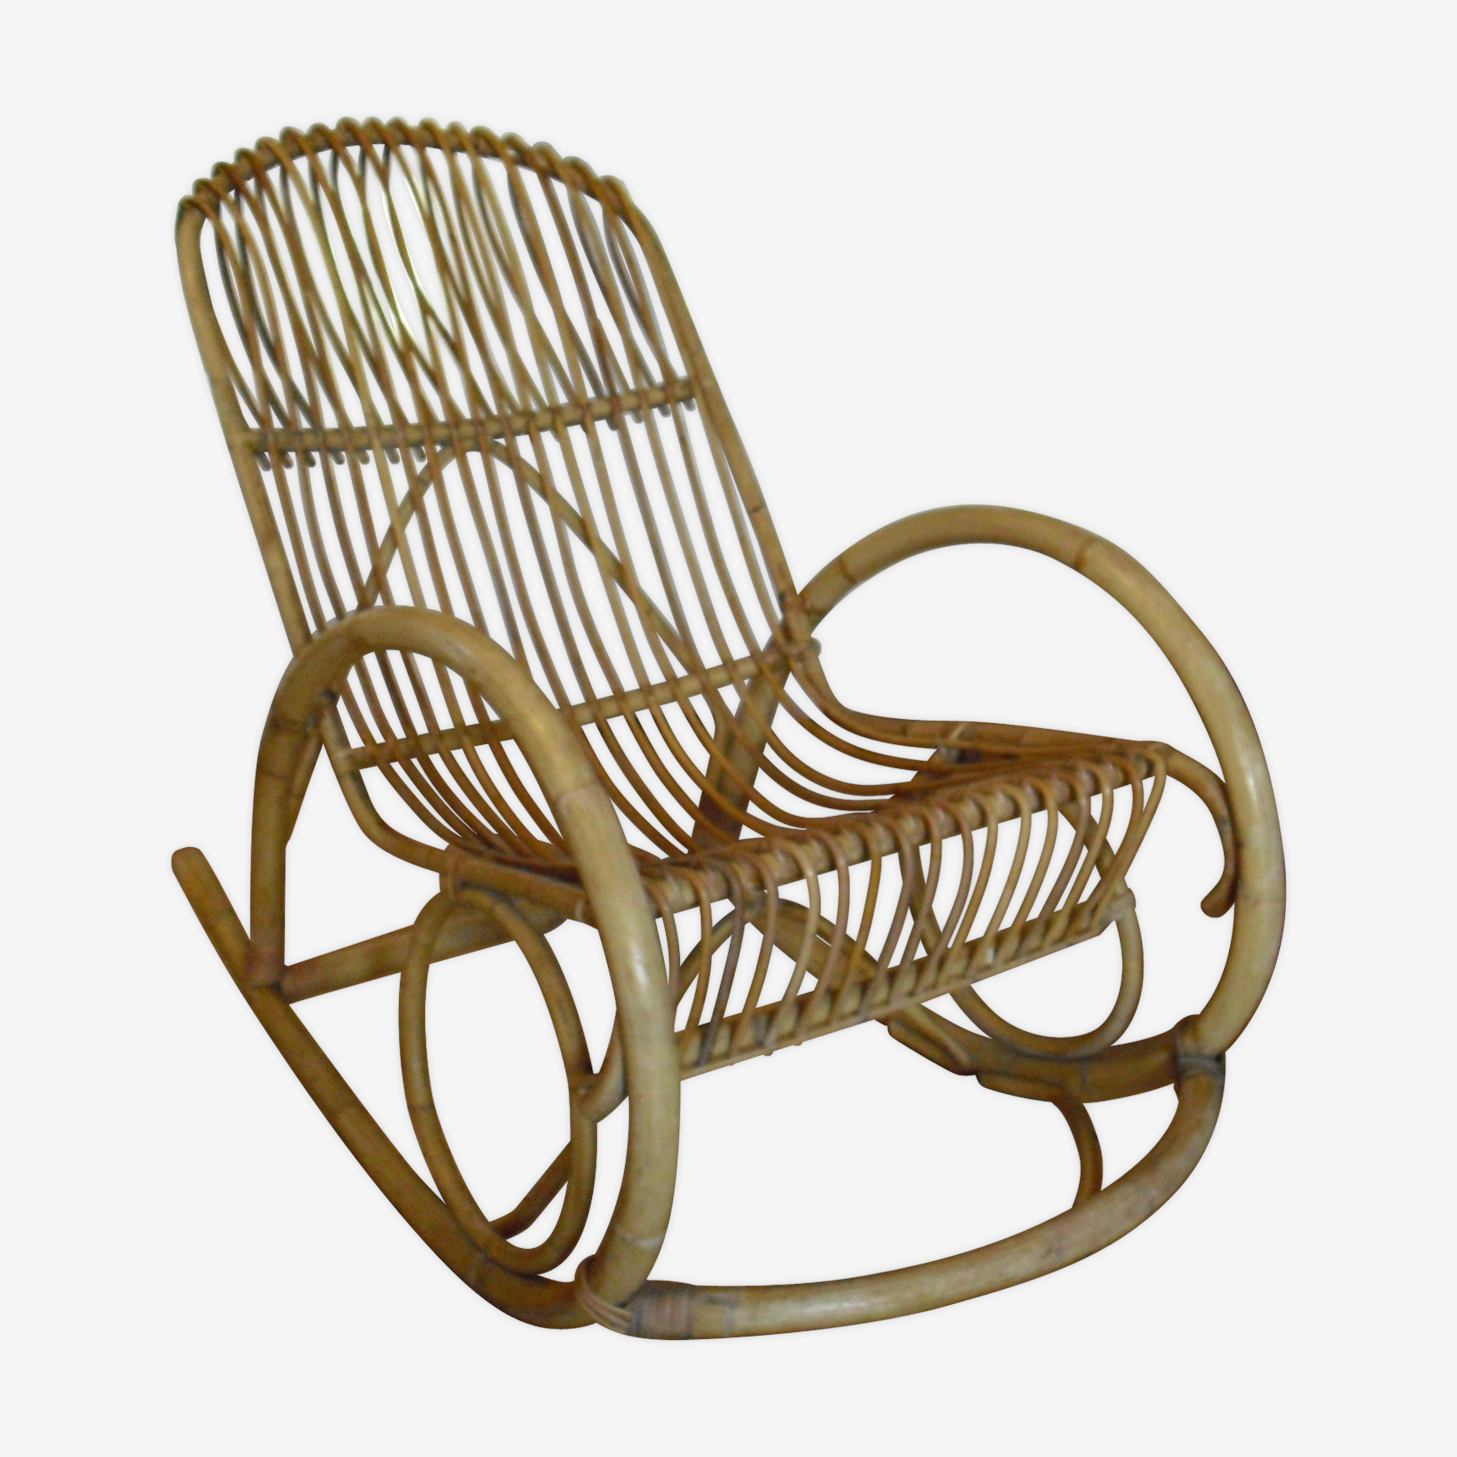 Rocking chair rattan and bamboo sixties